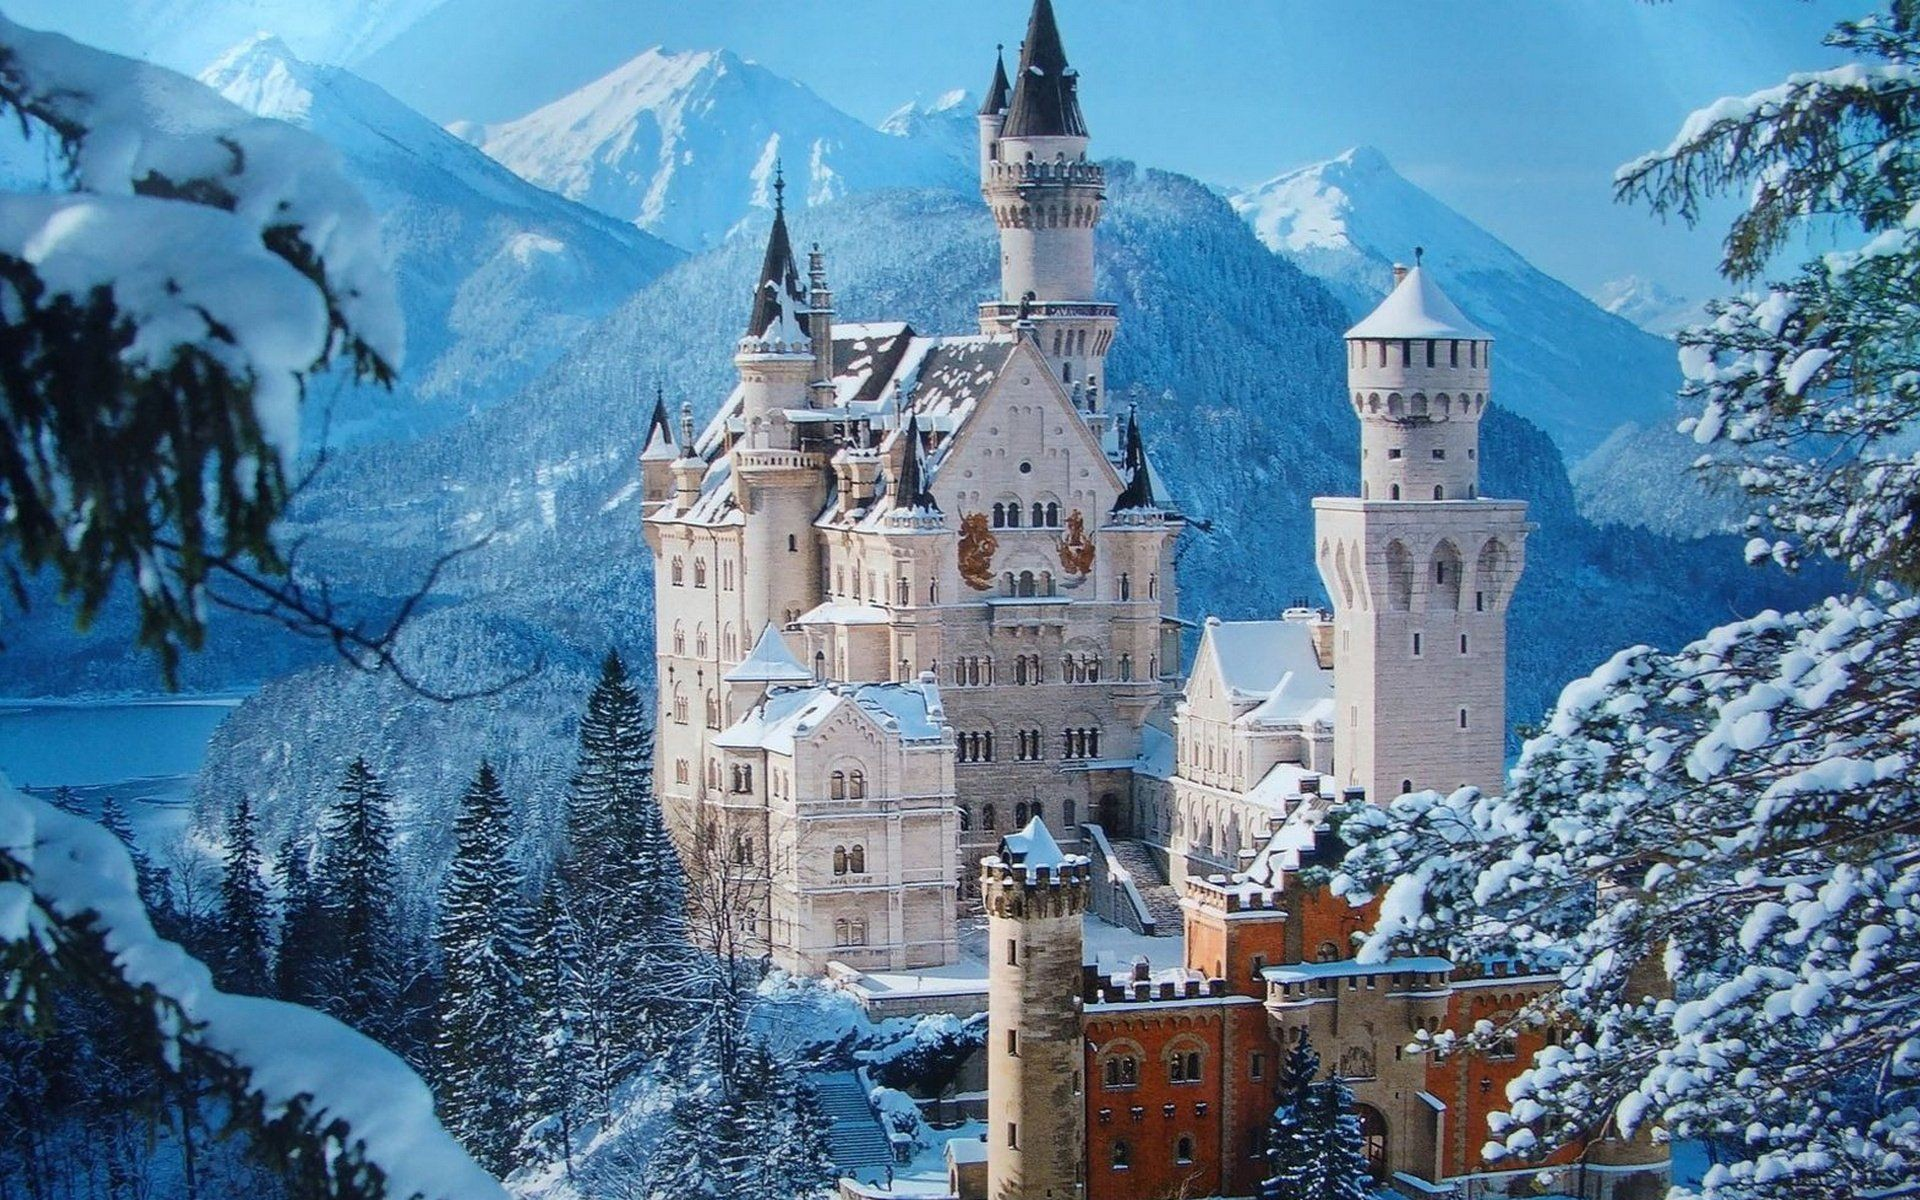 Res: 1920x1200, Man Made Neuschwanstein Castle Castle Building Wallpaper